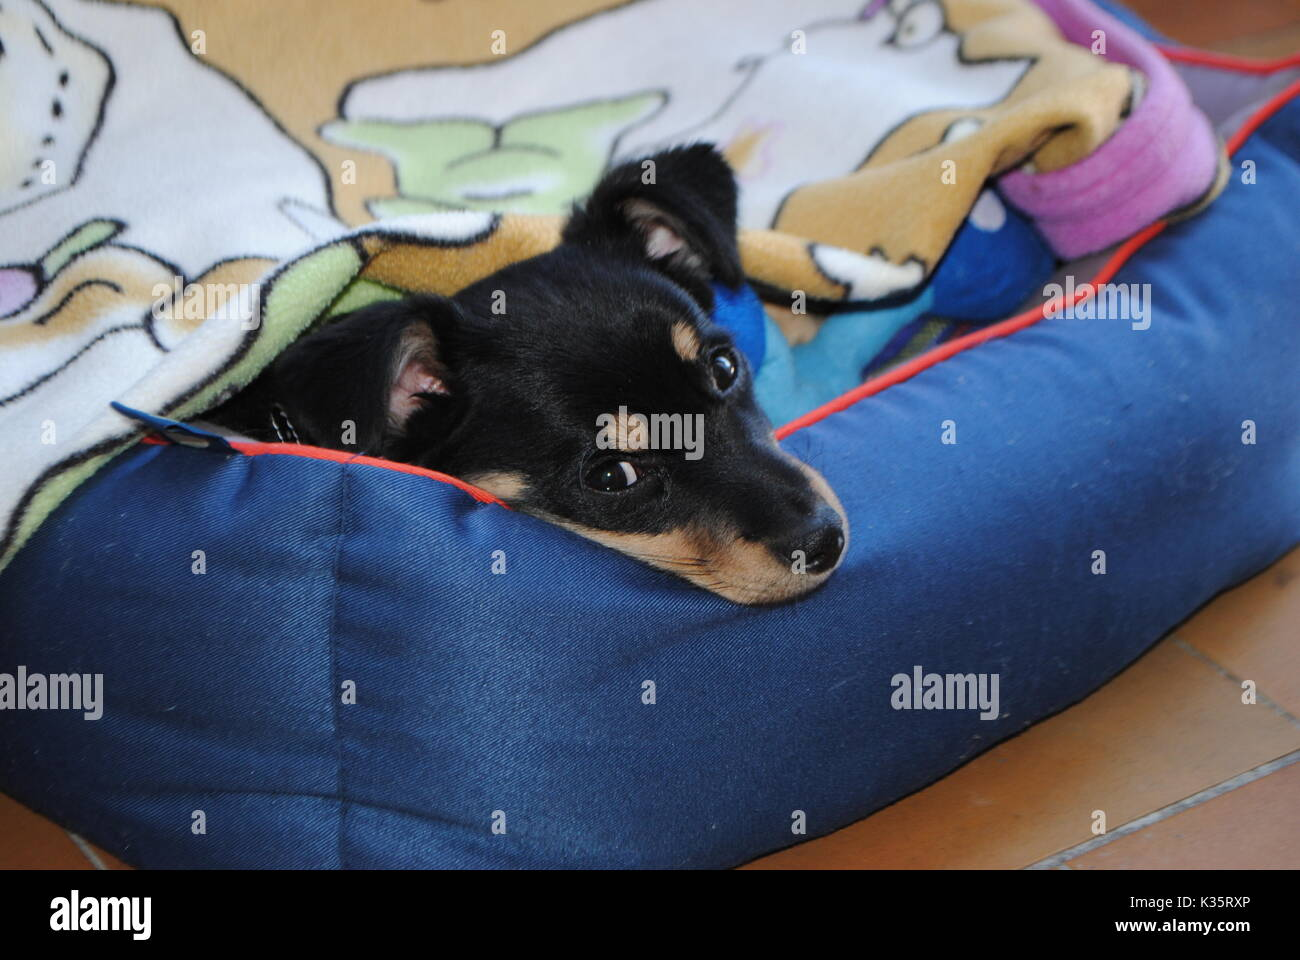 the puppy sleeping - Stock Image